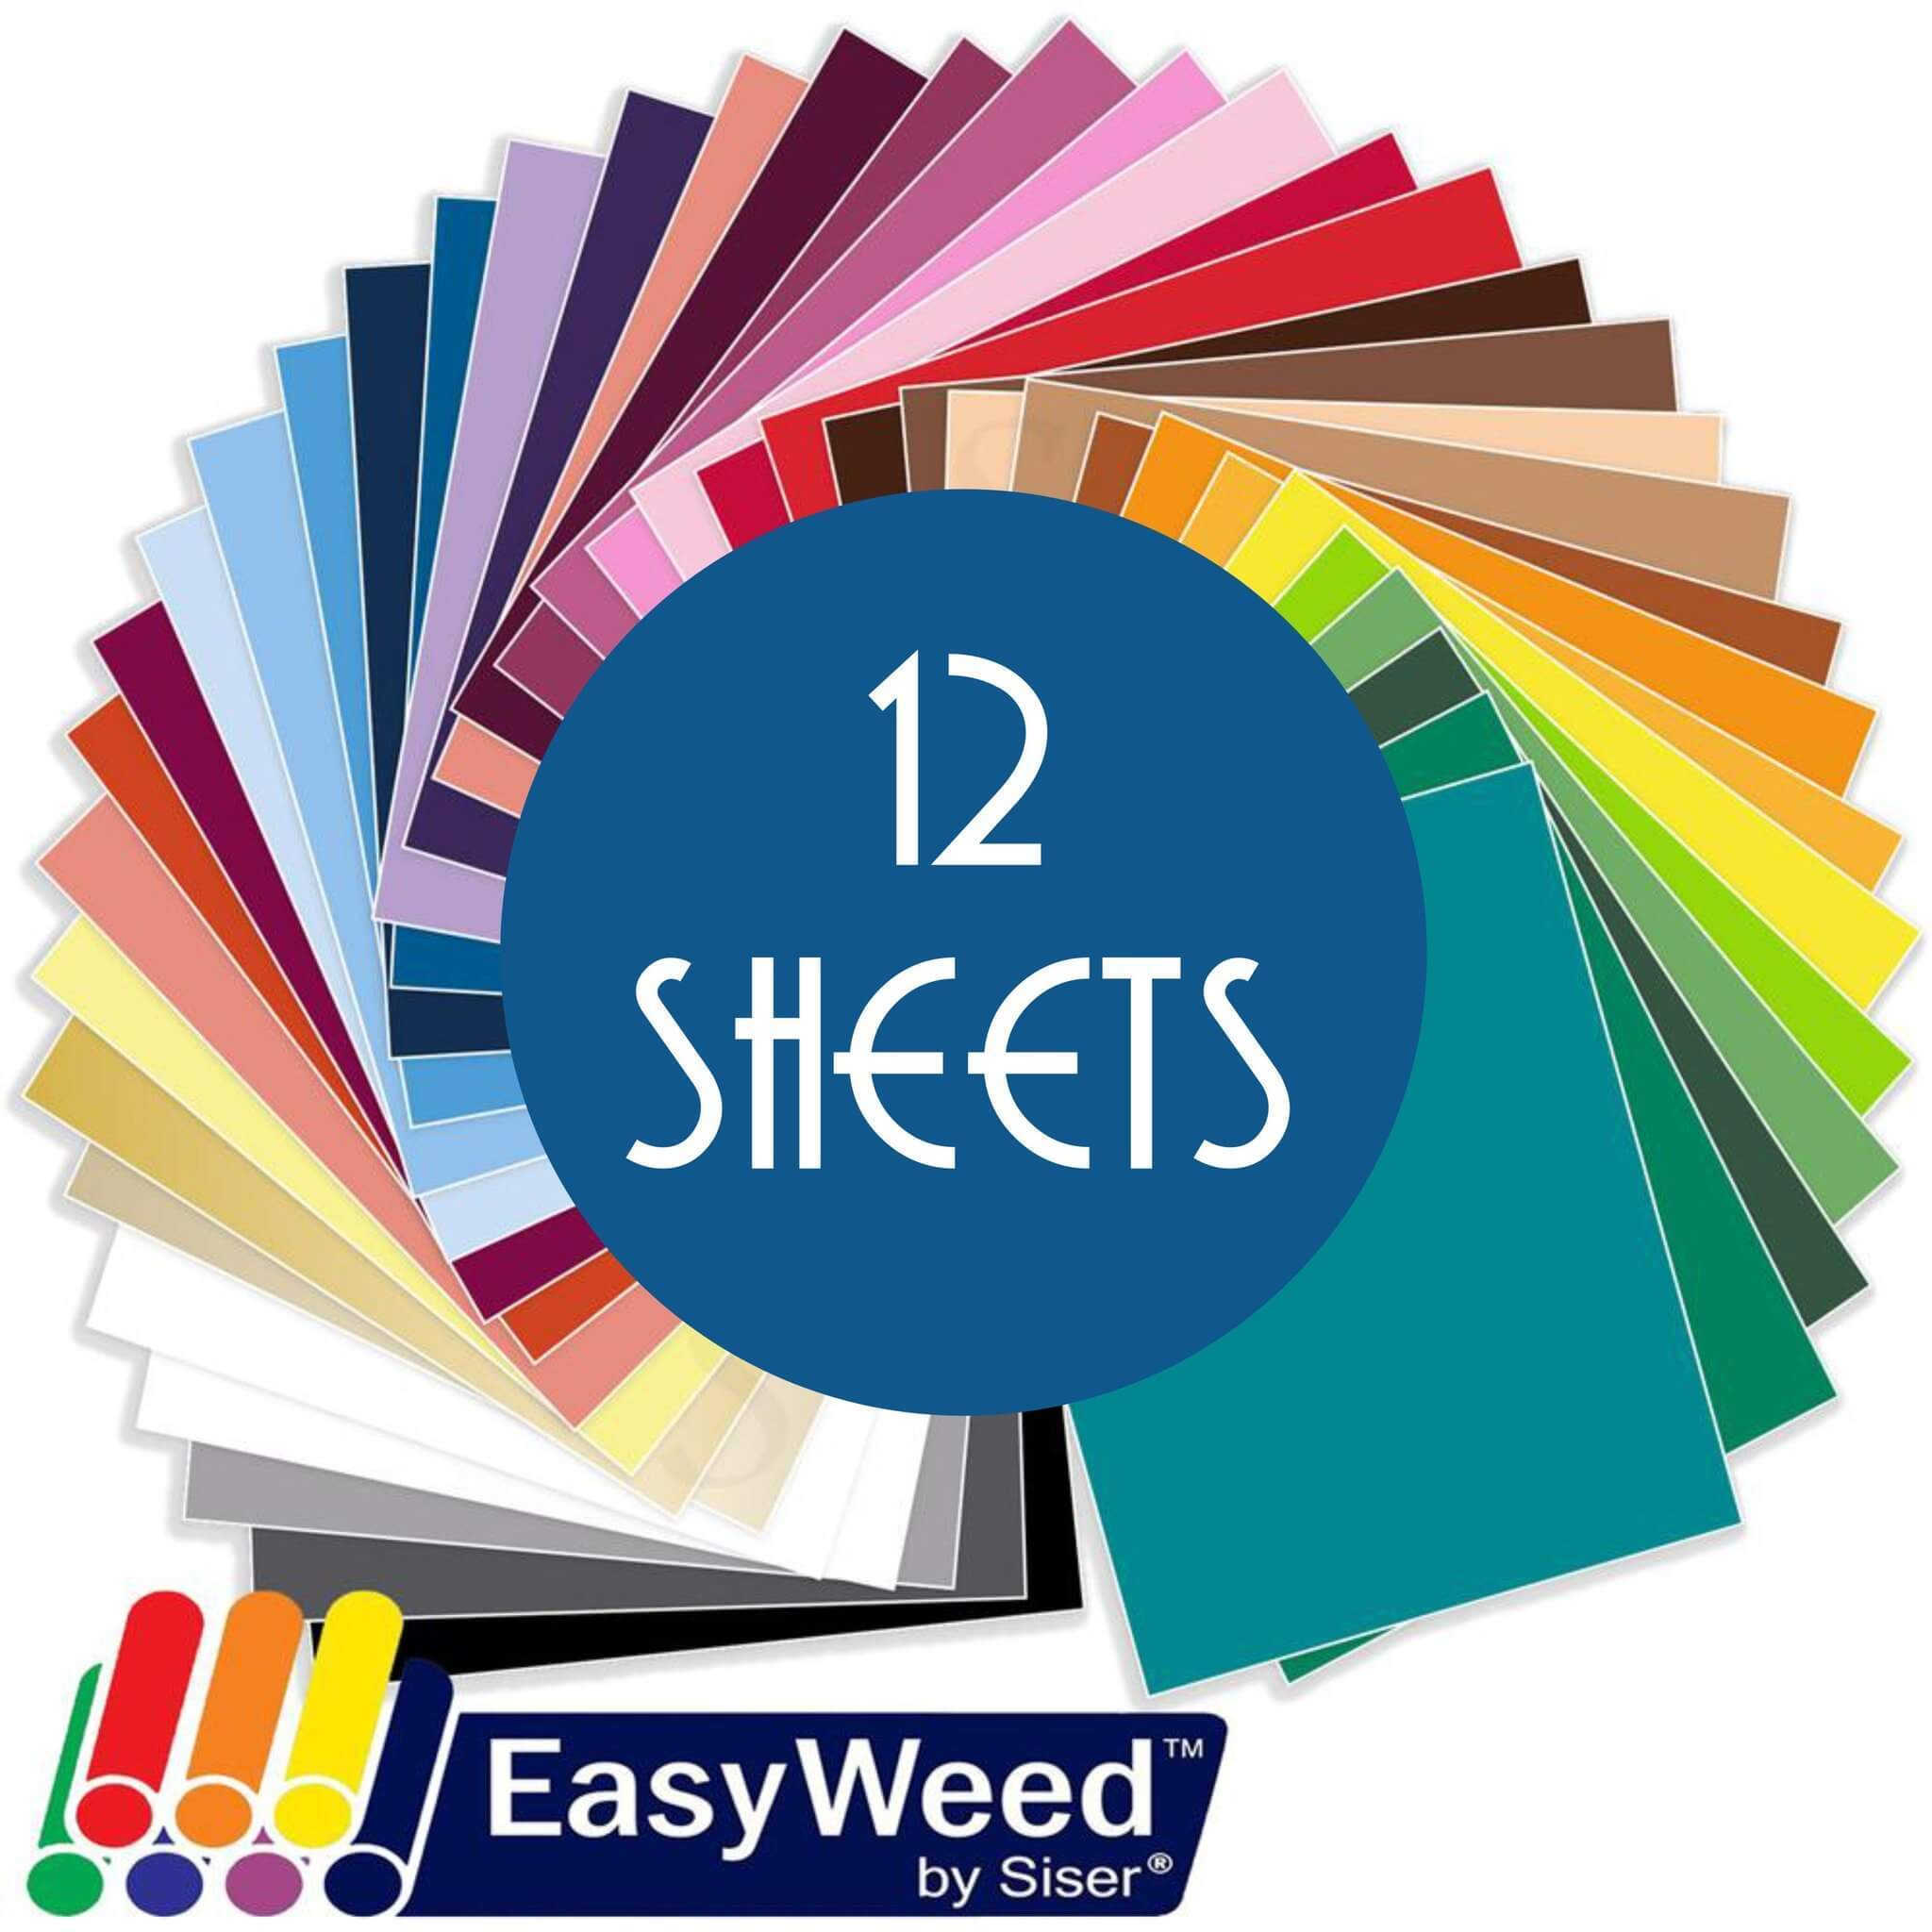 Siser Easyweed Heat Transfer 12 Roll Bundle 15 Inches By 3 Feet Rolls Siser Easyweed Heat Transfer Vinyl Siser